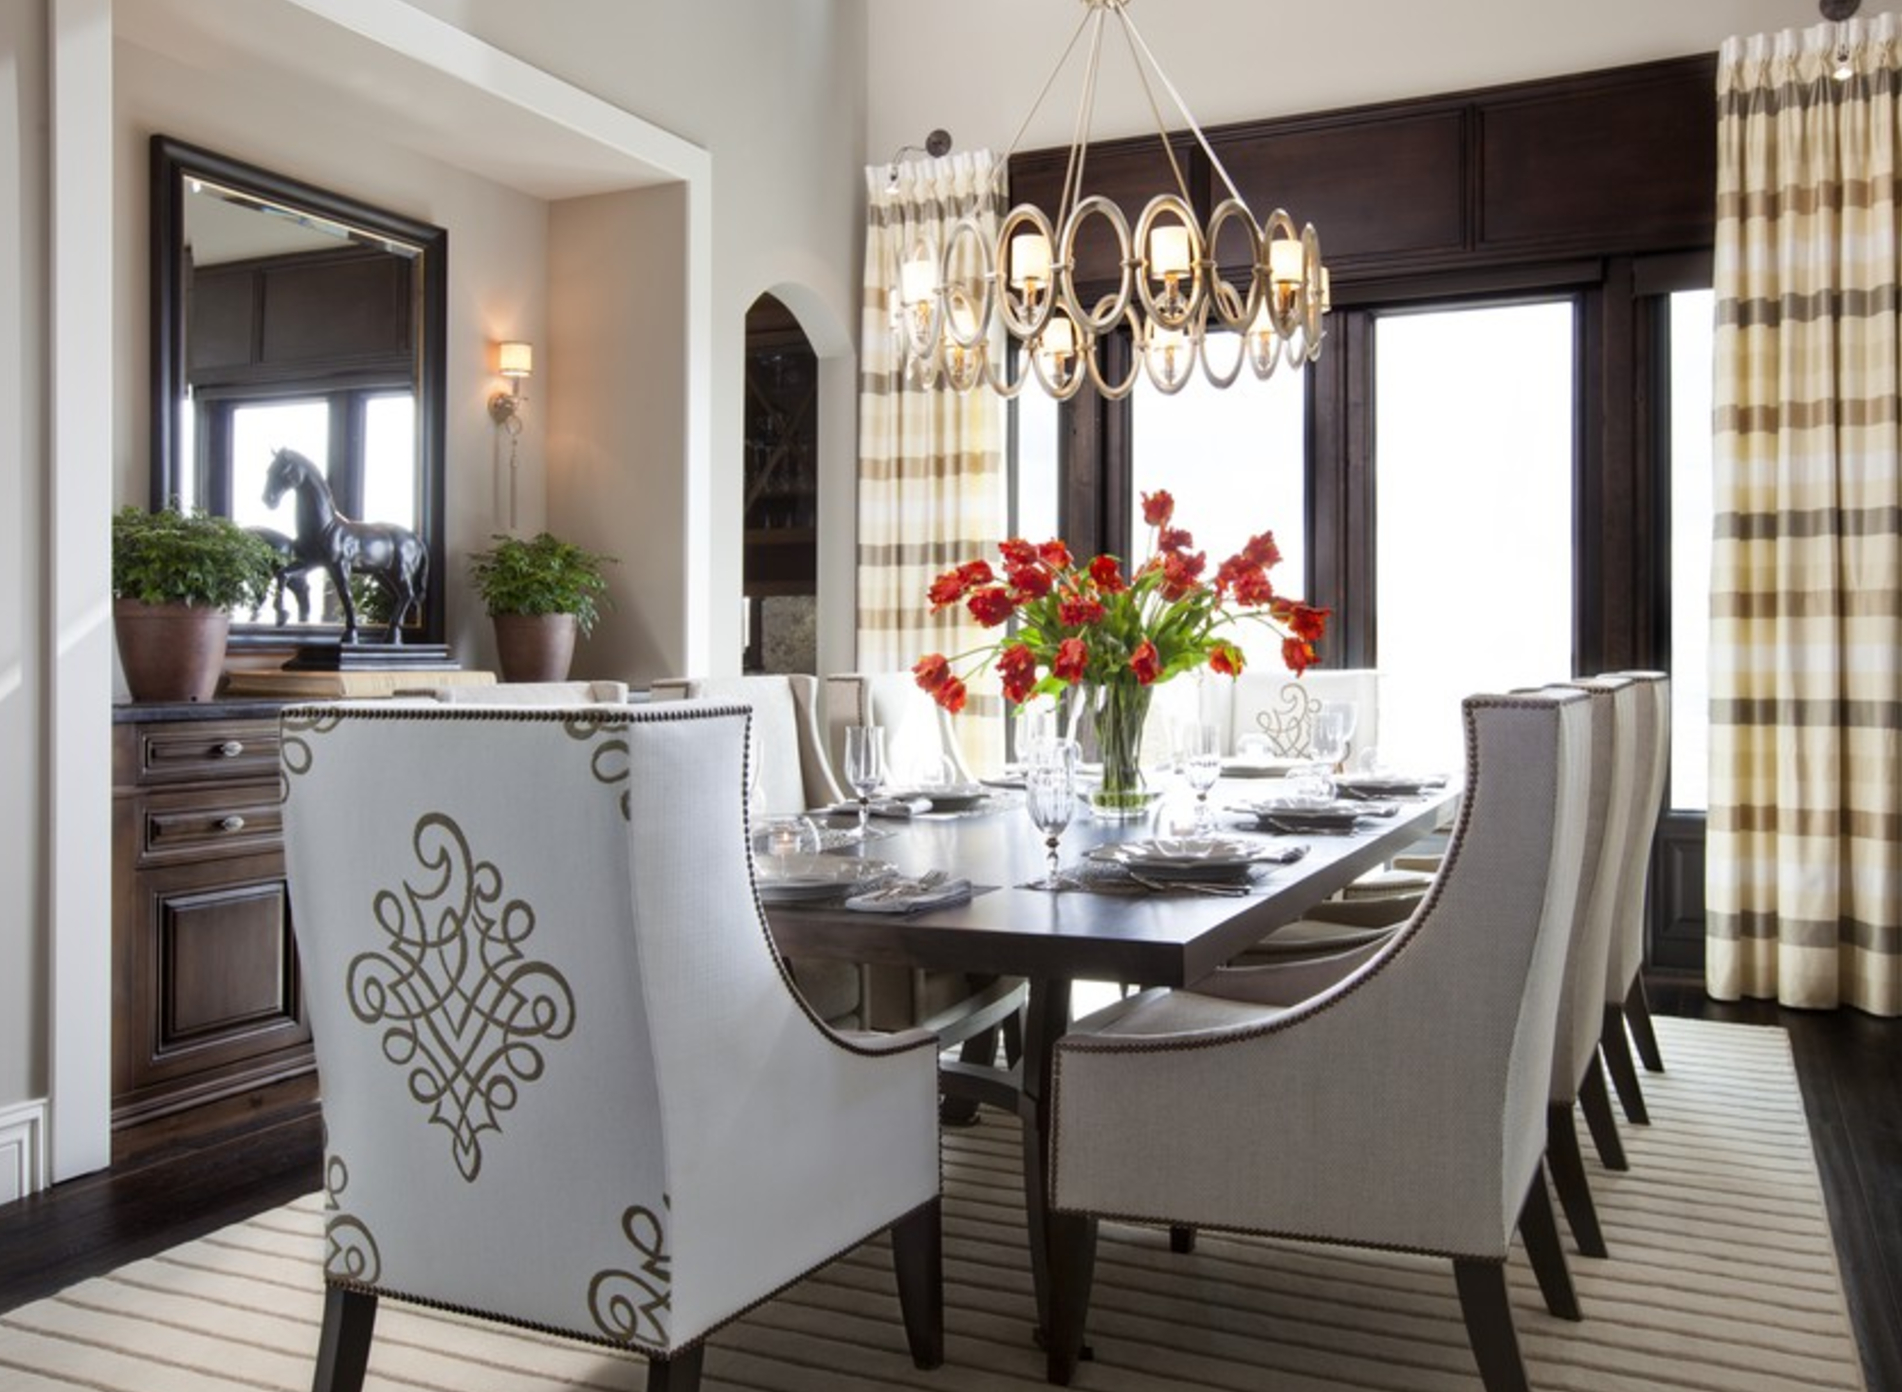 Dining Table Buying Guide: How To Find The Perfect Dining with Well known Transitional 6-Seating Casual Dining Tables